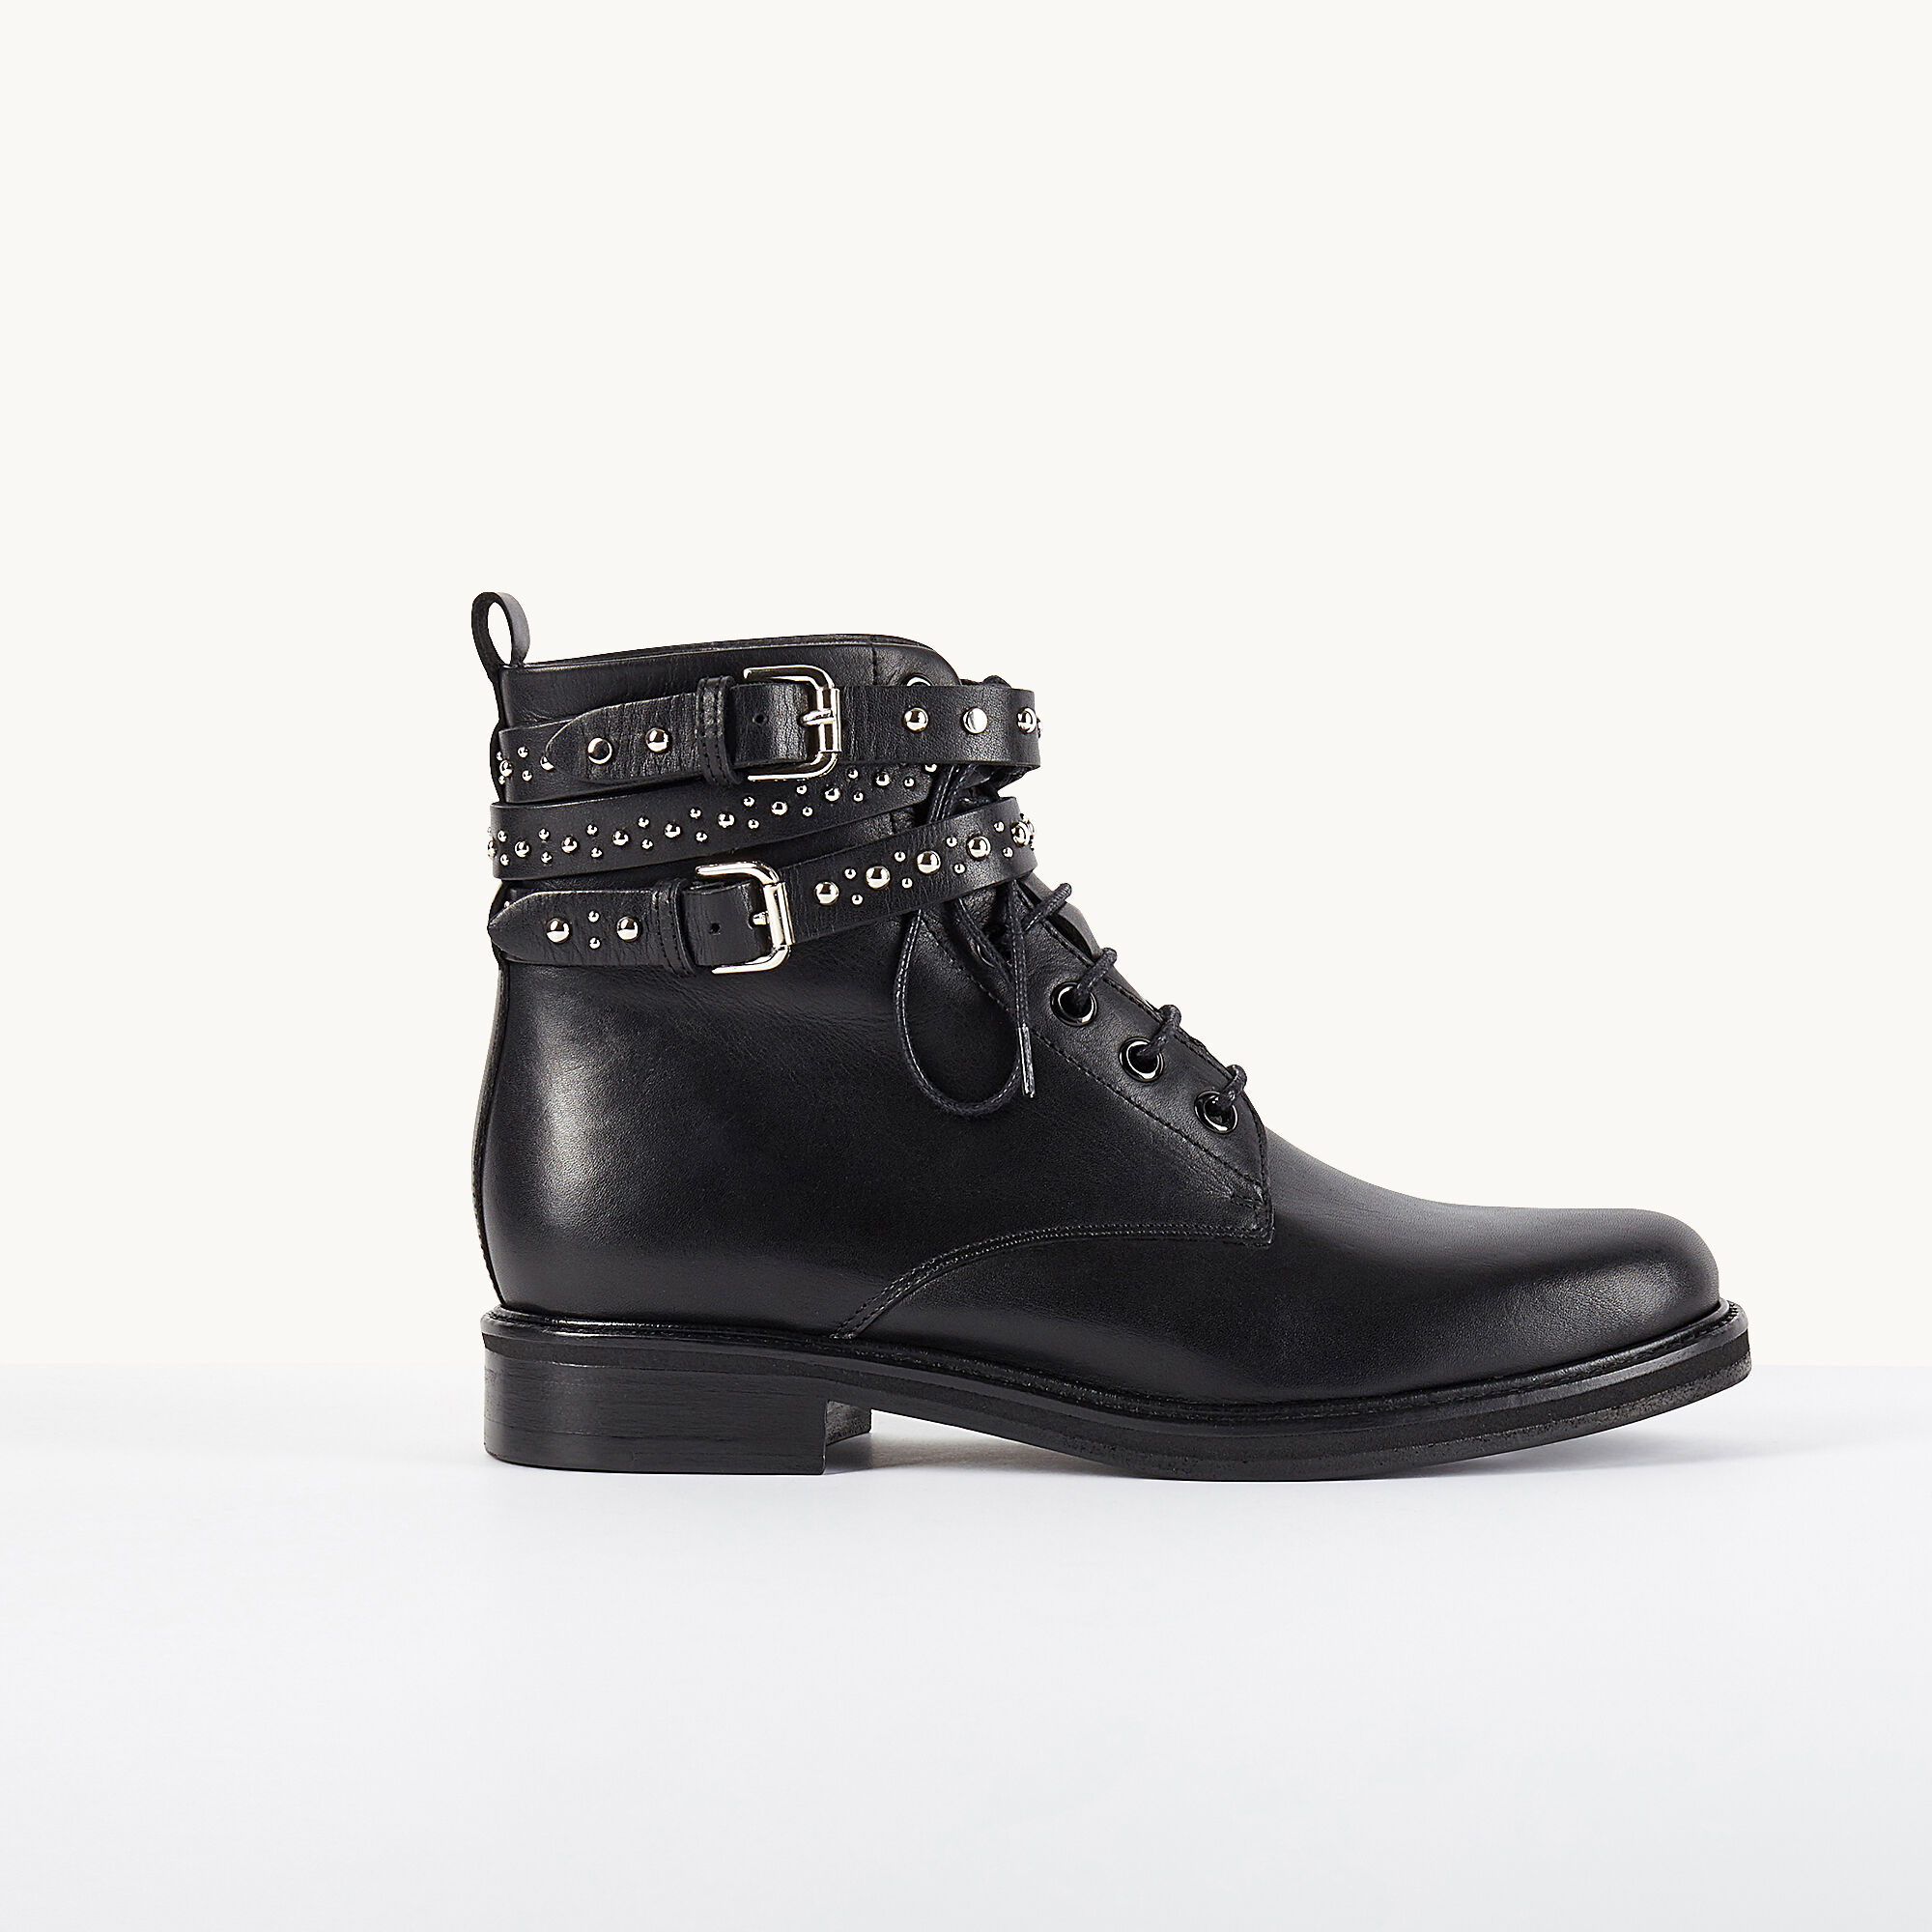 Maje Leather Ankle Boots clearance store online 0mQTIu